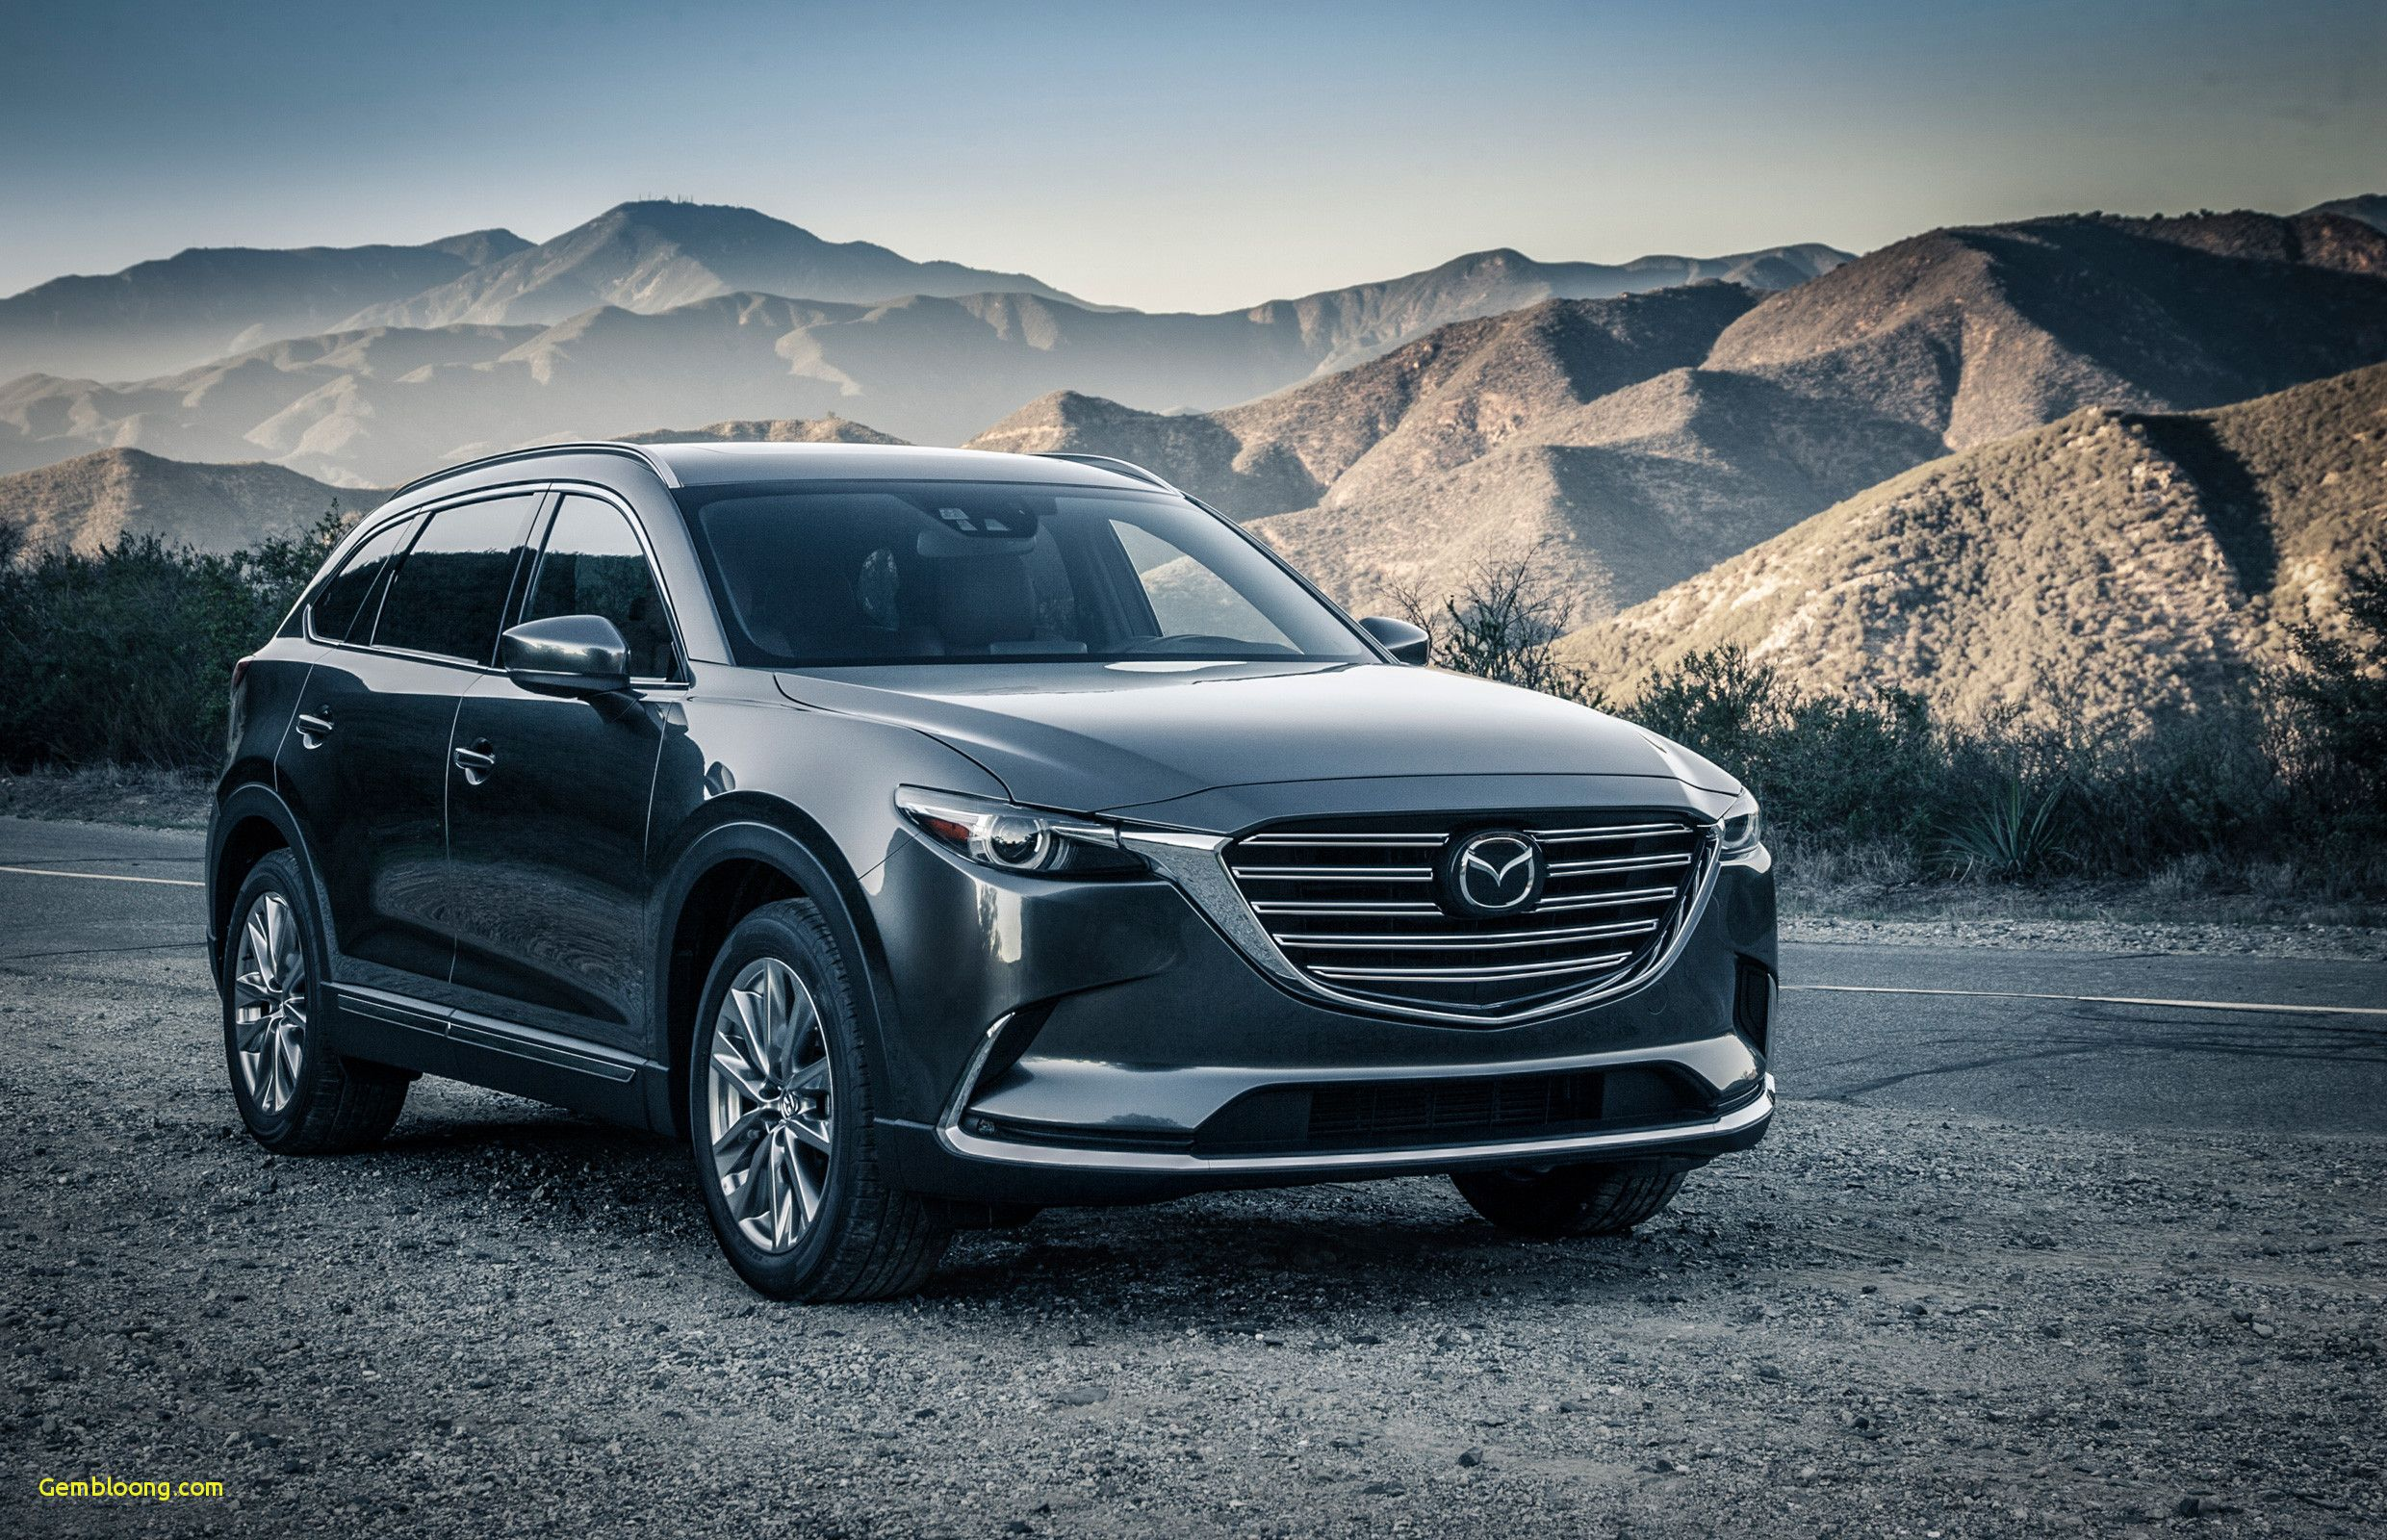 2018 Mazda Cx 9 Redesign Mazda Planning A New Mid Size Suv For 2021 Mazda Cx 9 Mazda Suv